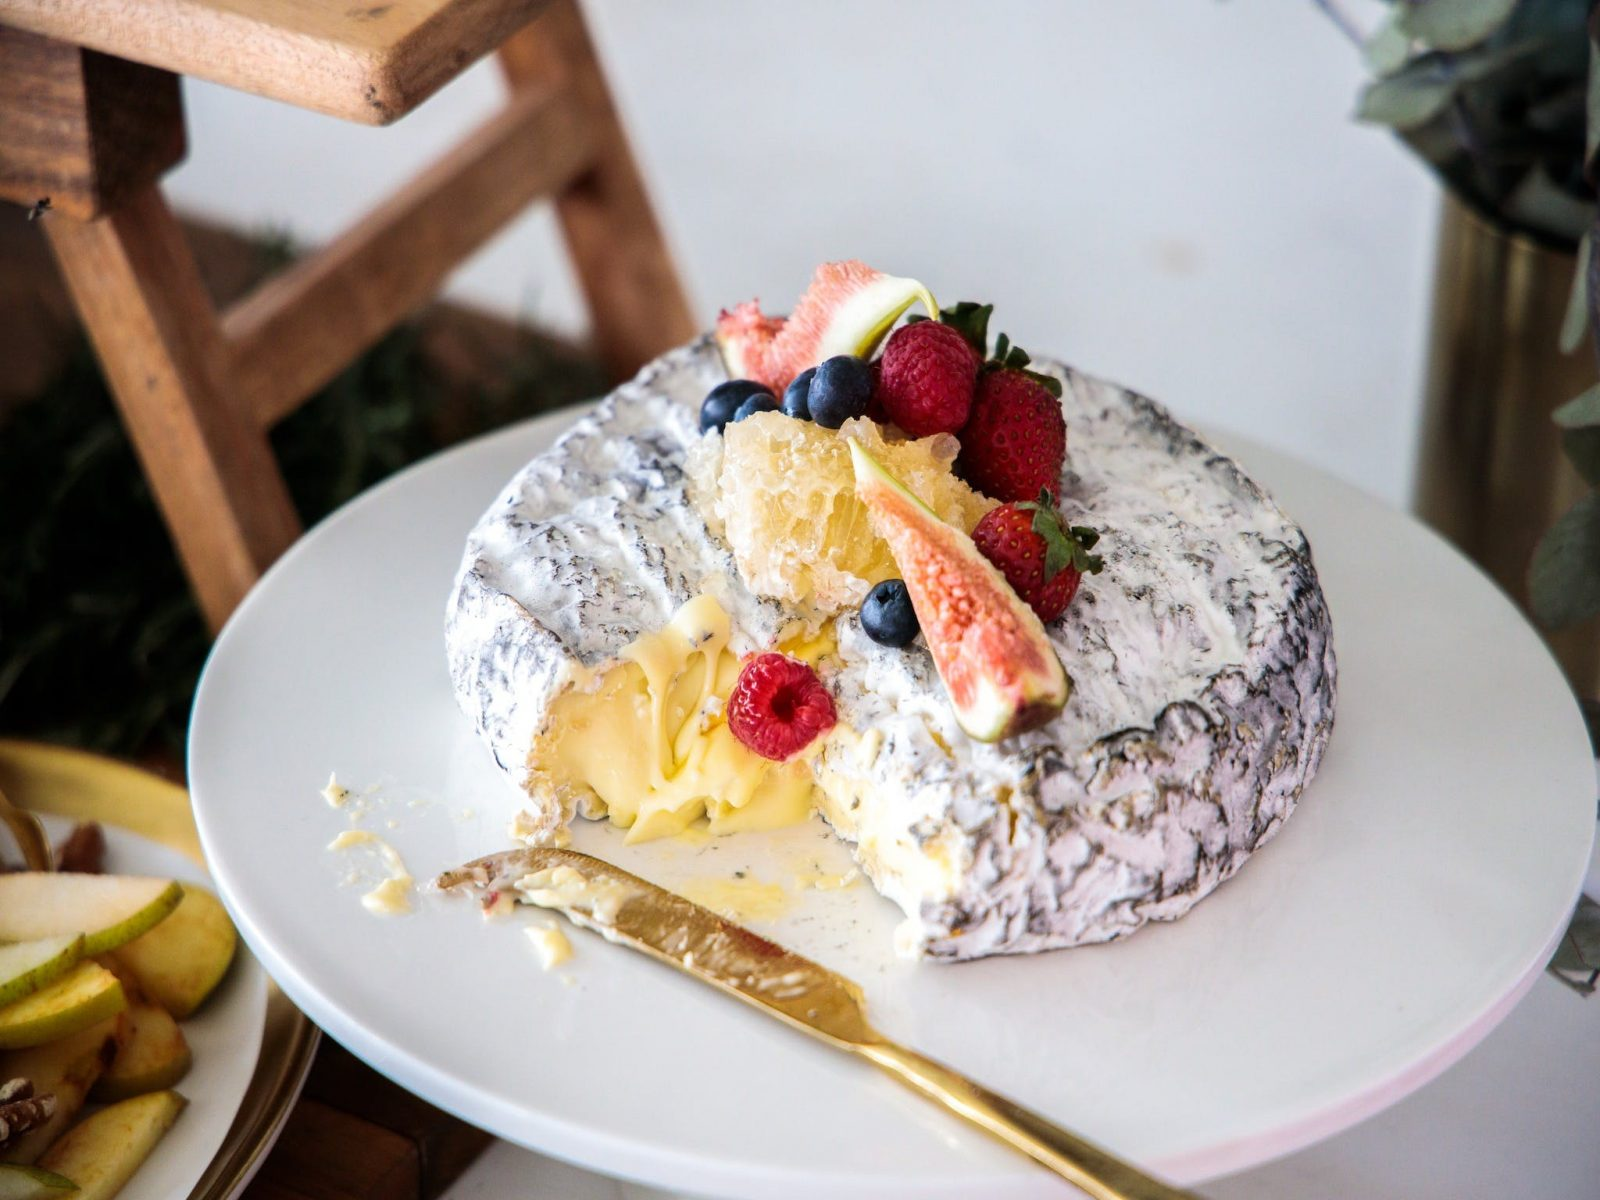 Ashed Brie With Honey and Fruit